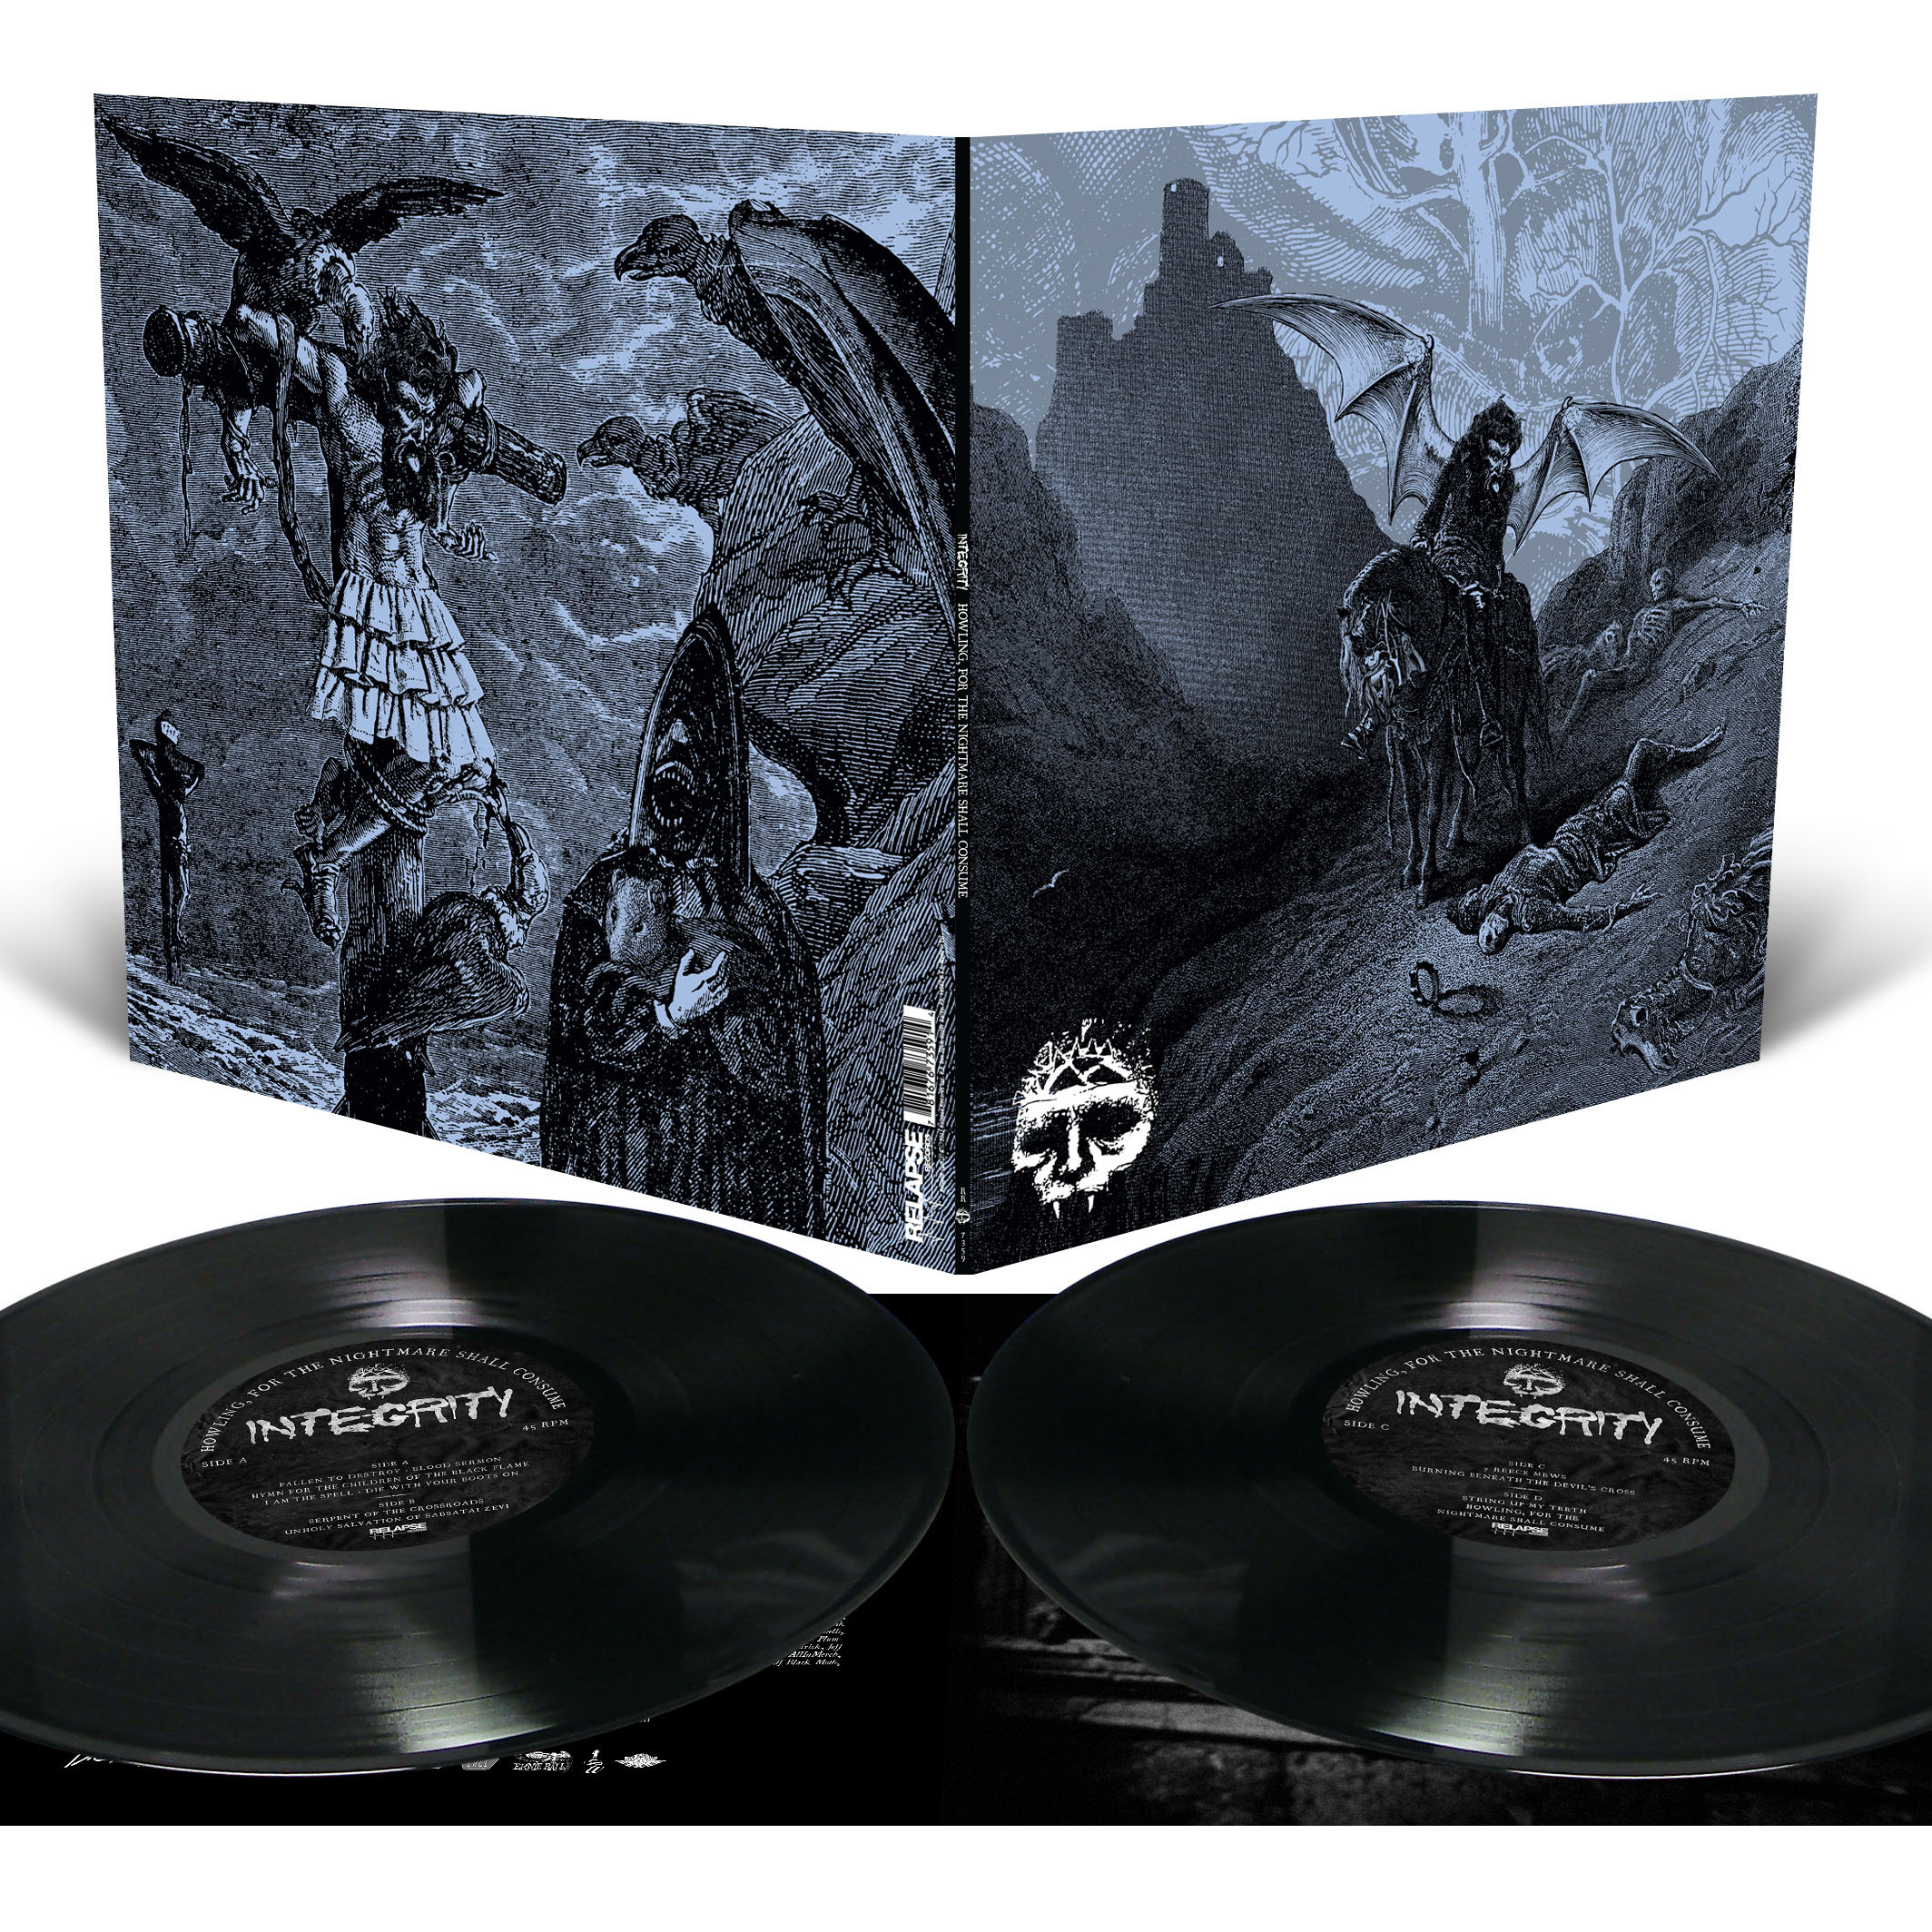 Howling, For The Nightmare Shall Consume Long Sleeve Shirt + 2LP Bundle